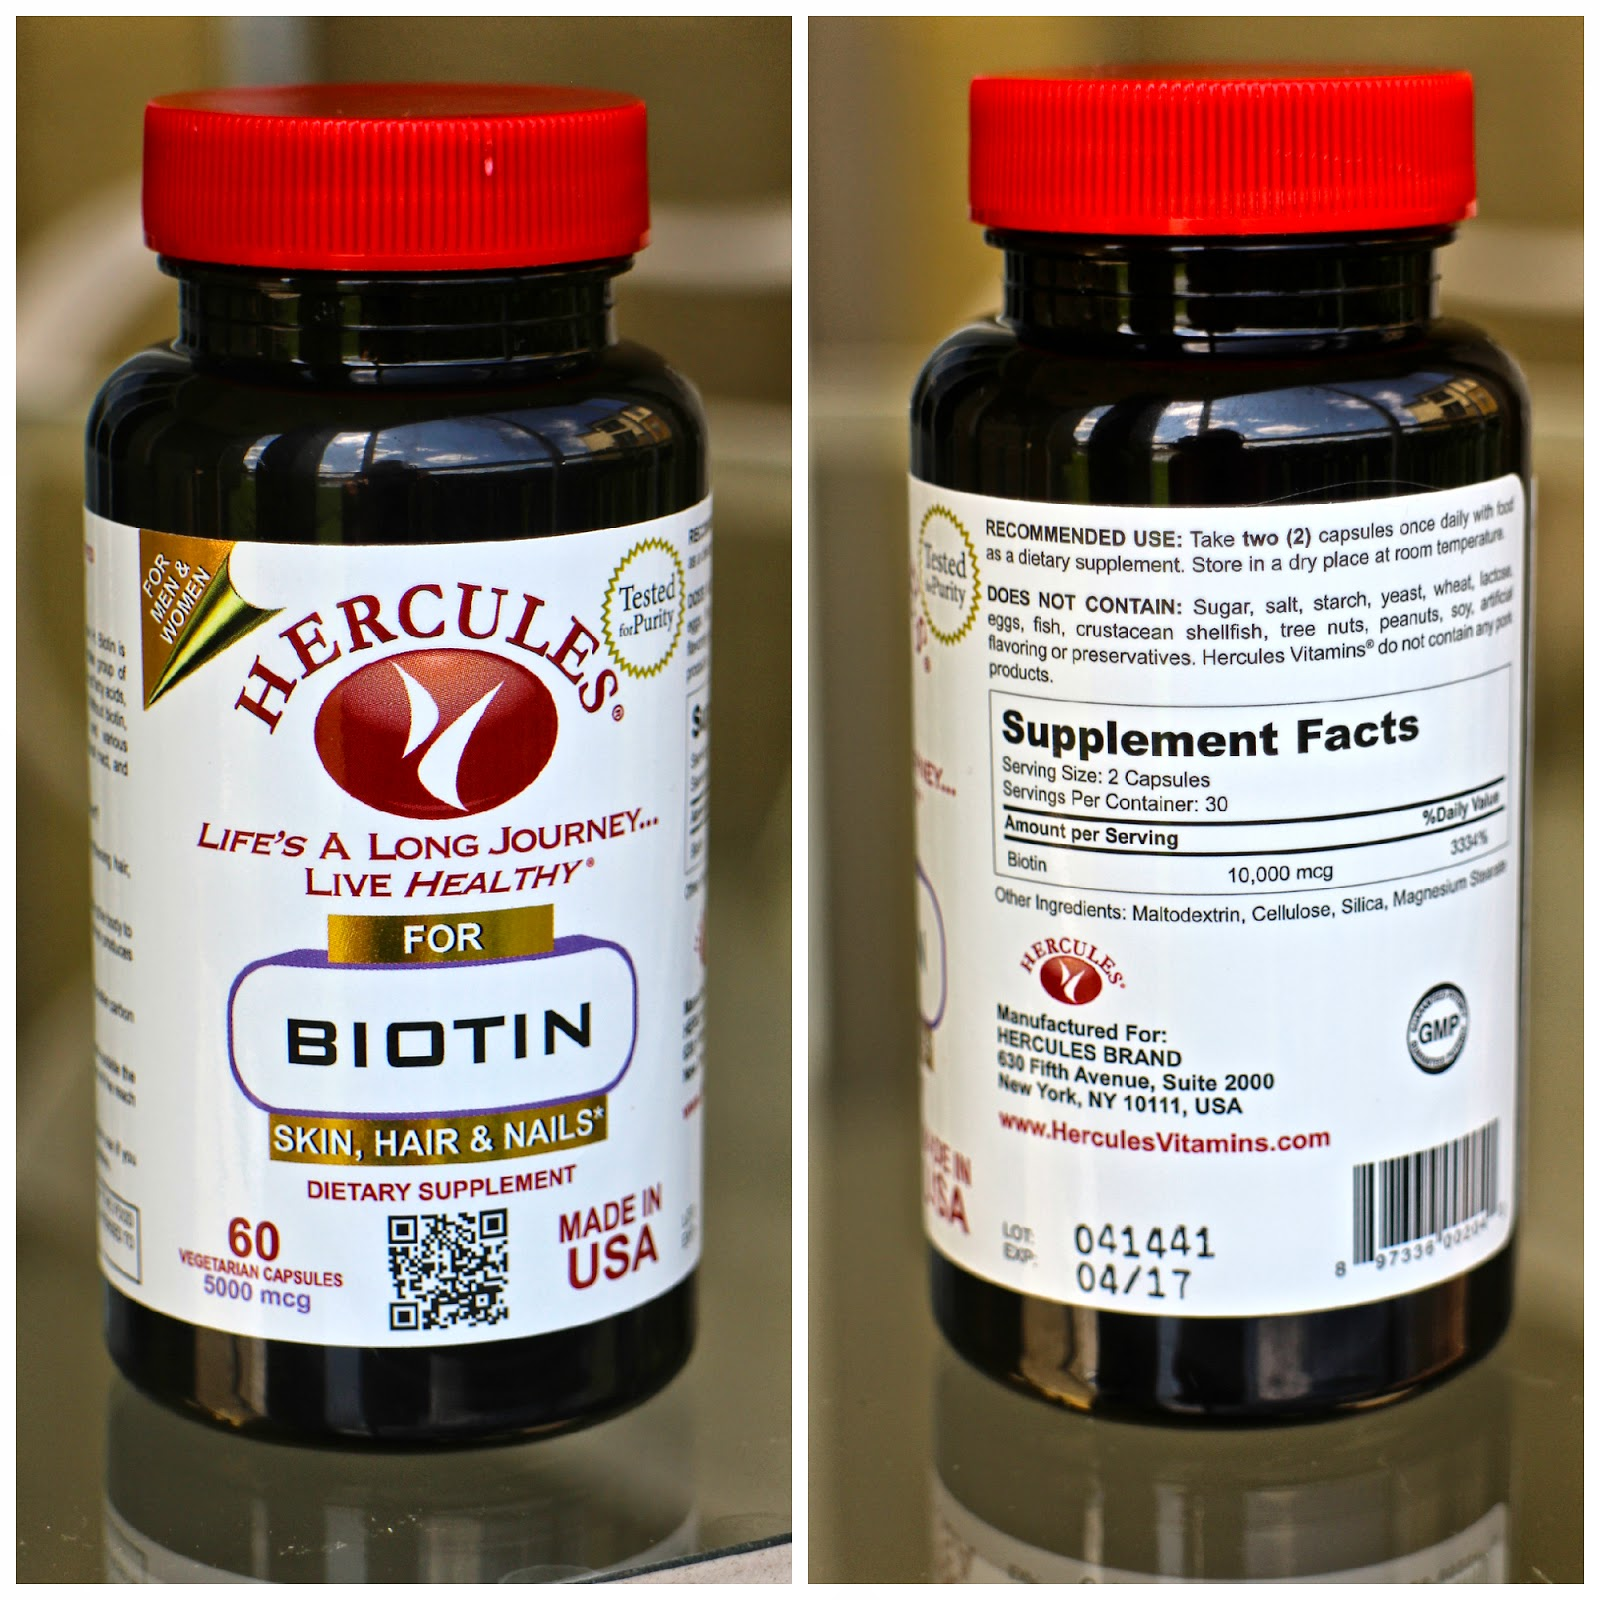 Hercules Biotin Vitamin Supplement